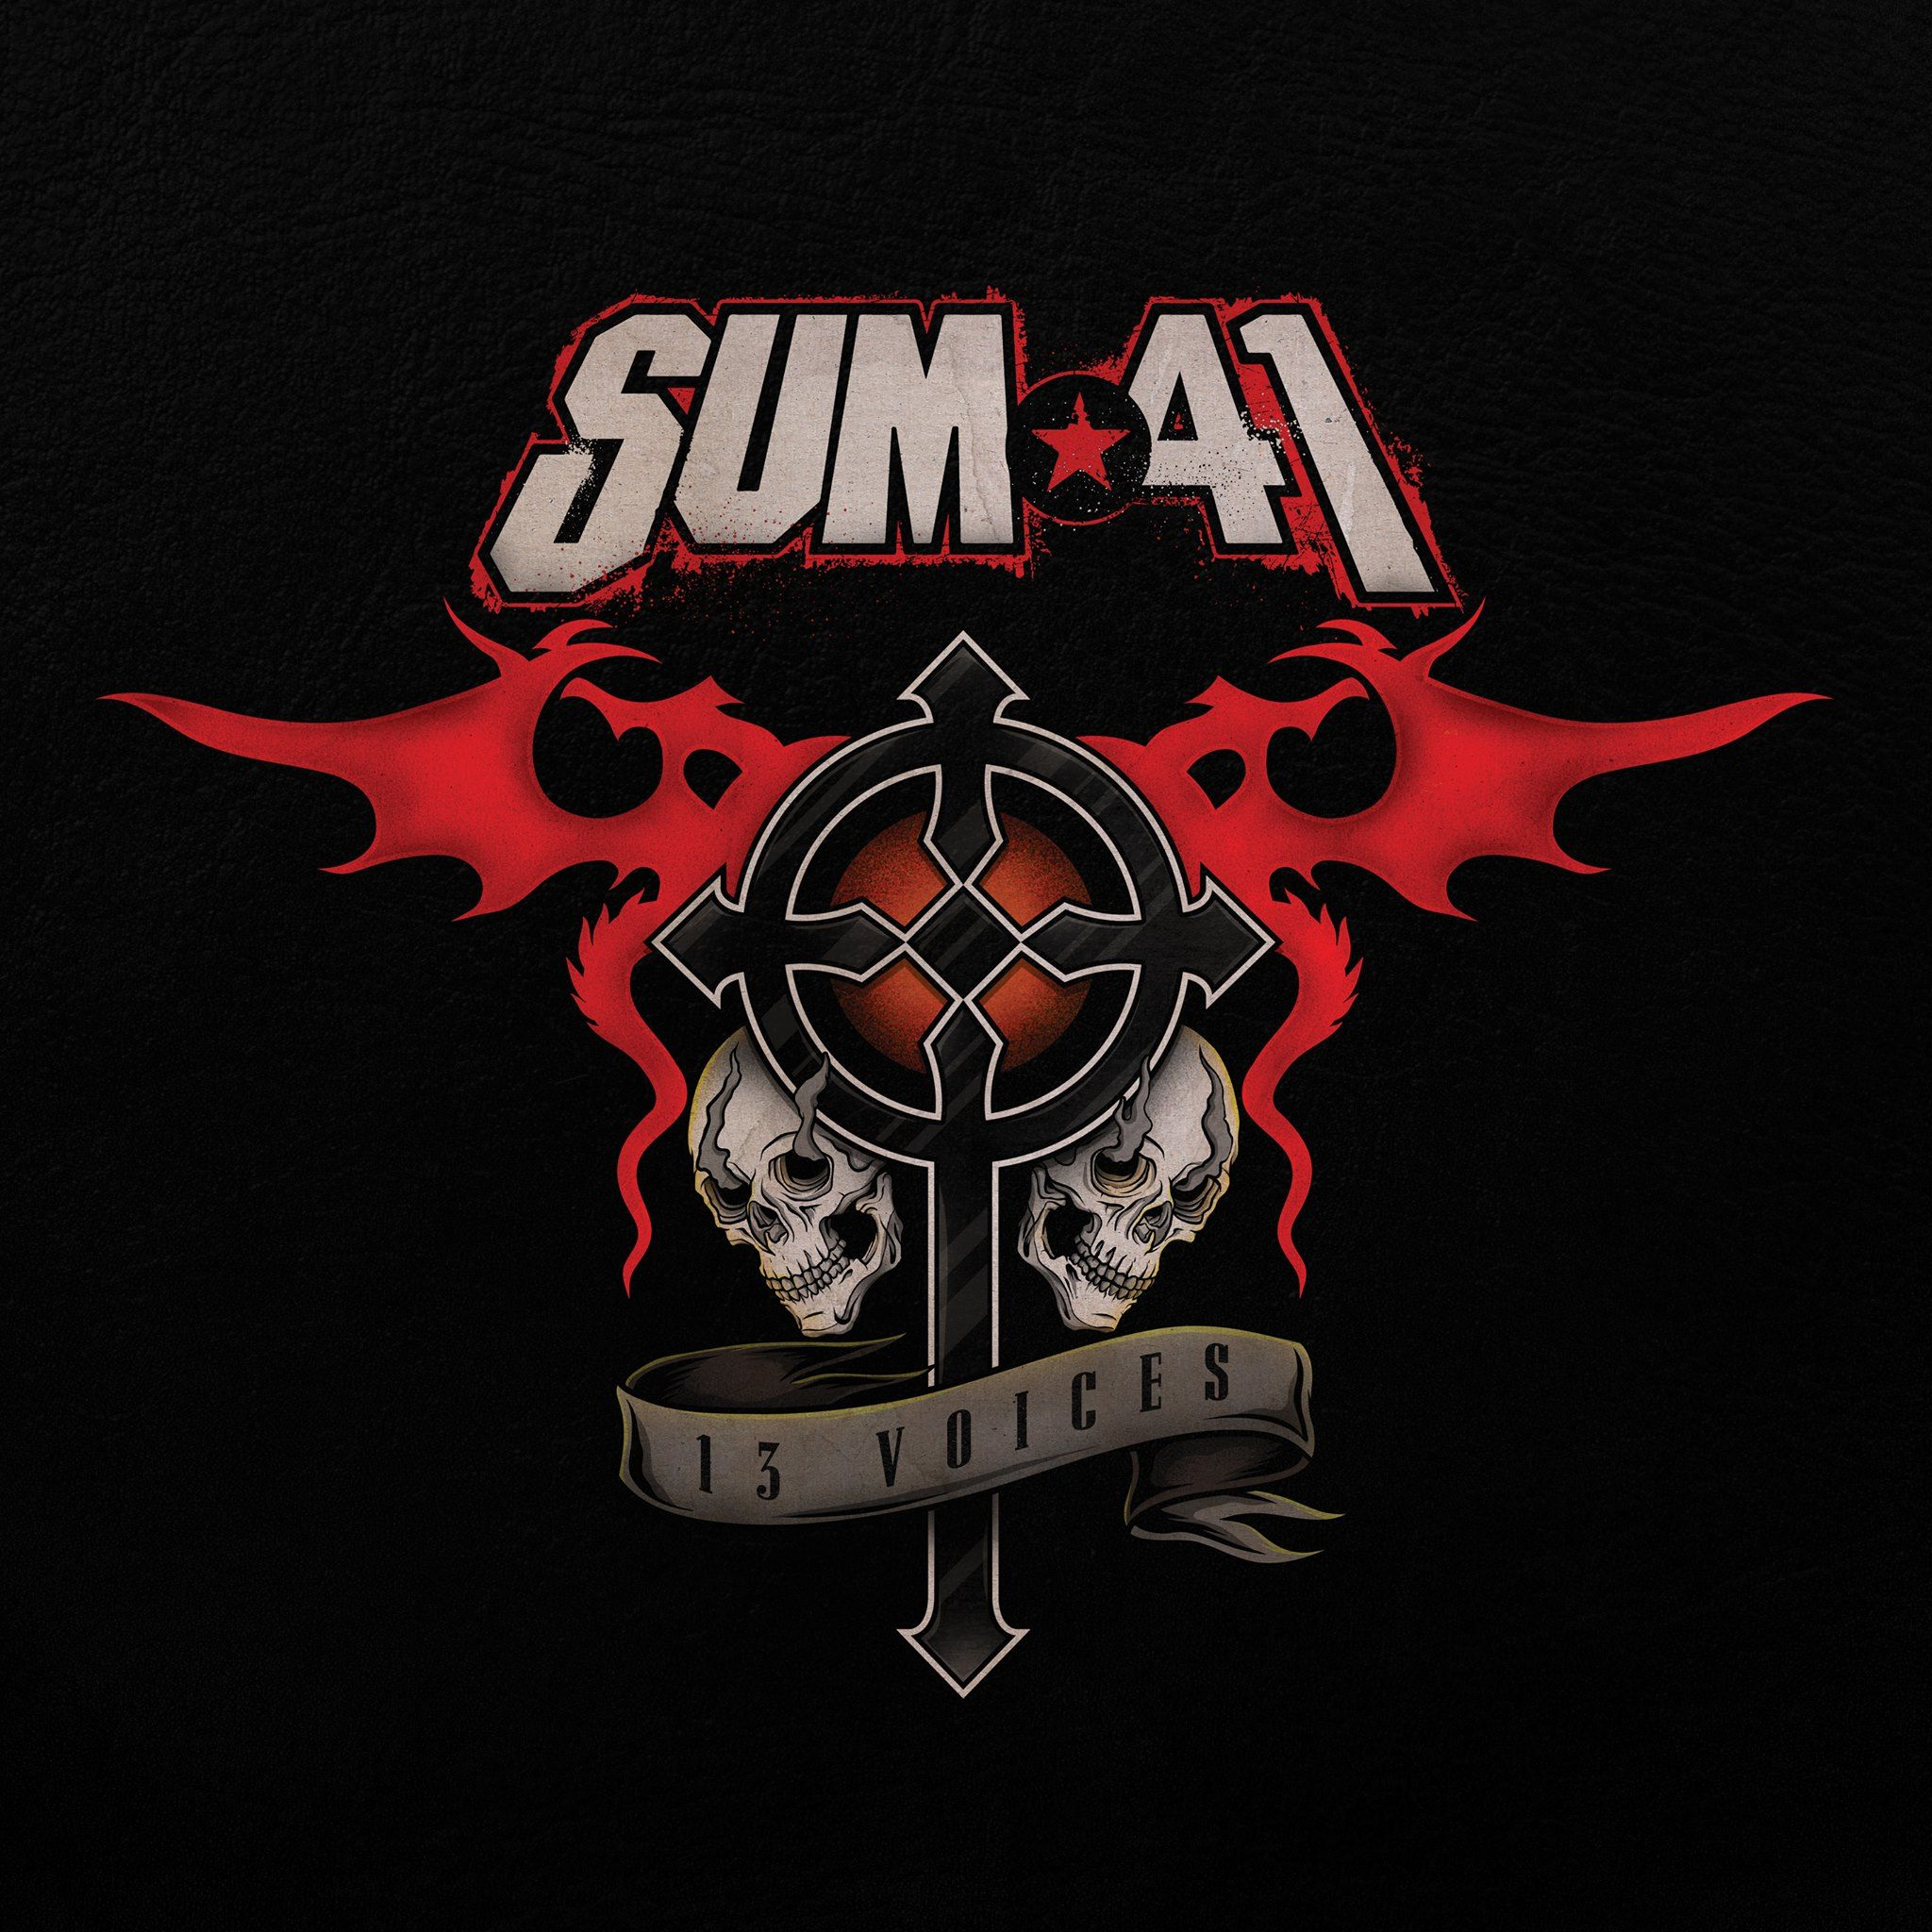 Sum 41 - 13 Voices album cover